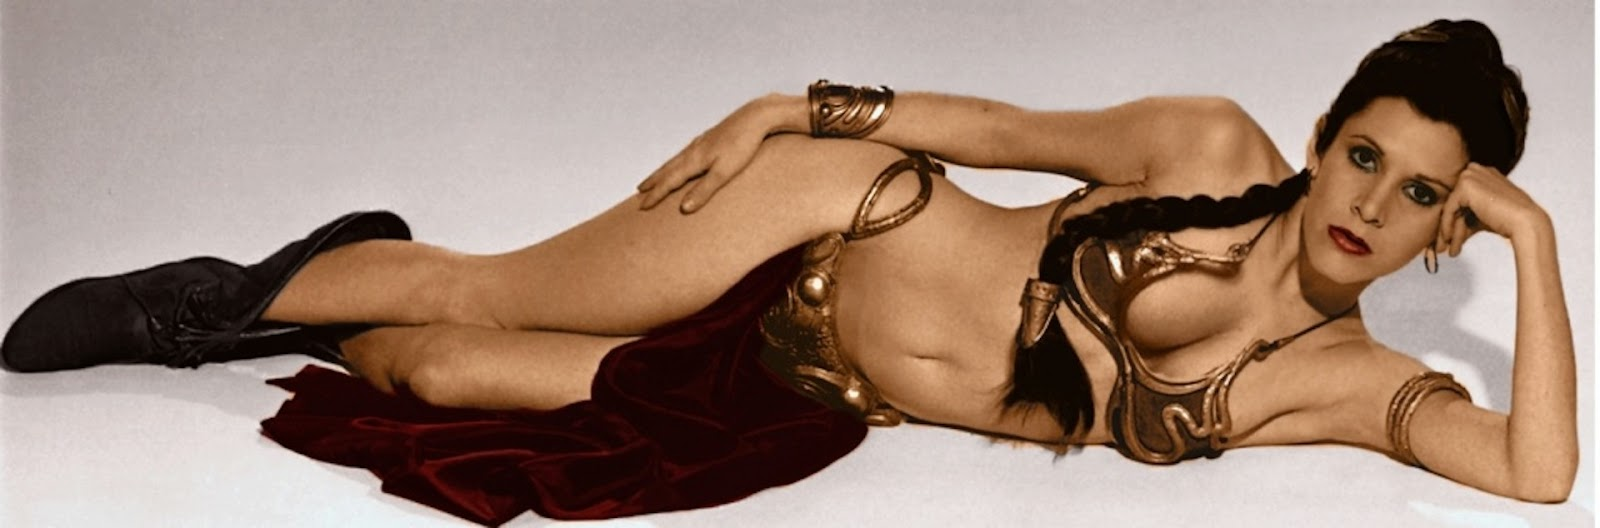 Princess leia sexy wallpapers erotic video